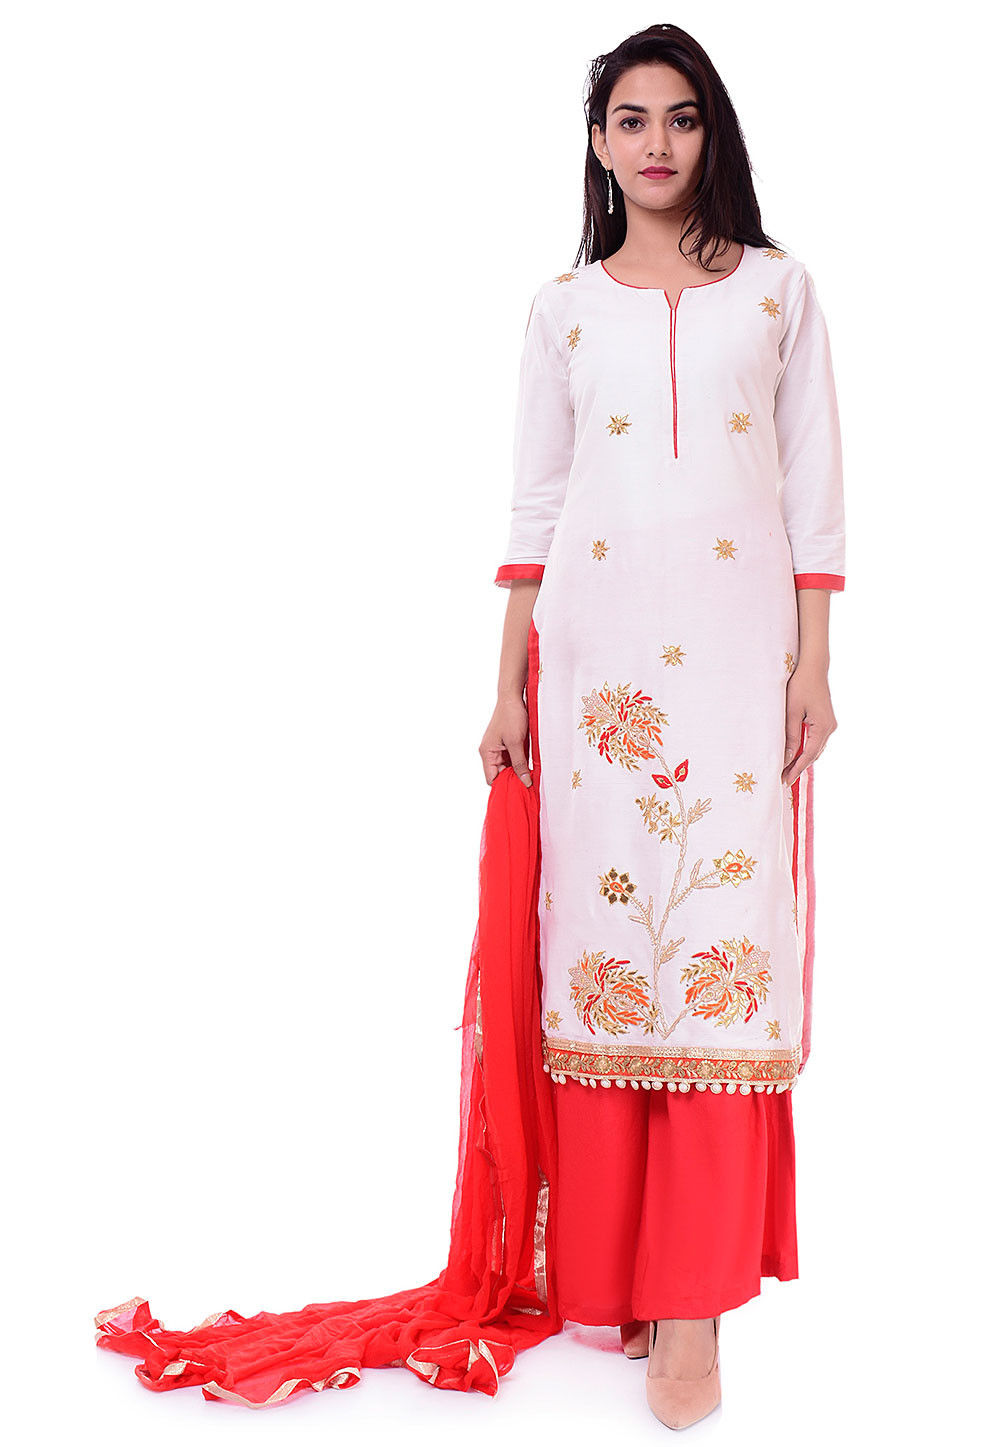 a7b6c6e219 ... Salwar Kameez; Embroidered Cotton Silk Pakistani Suit in White. Zoom